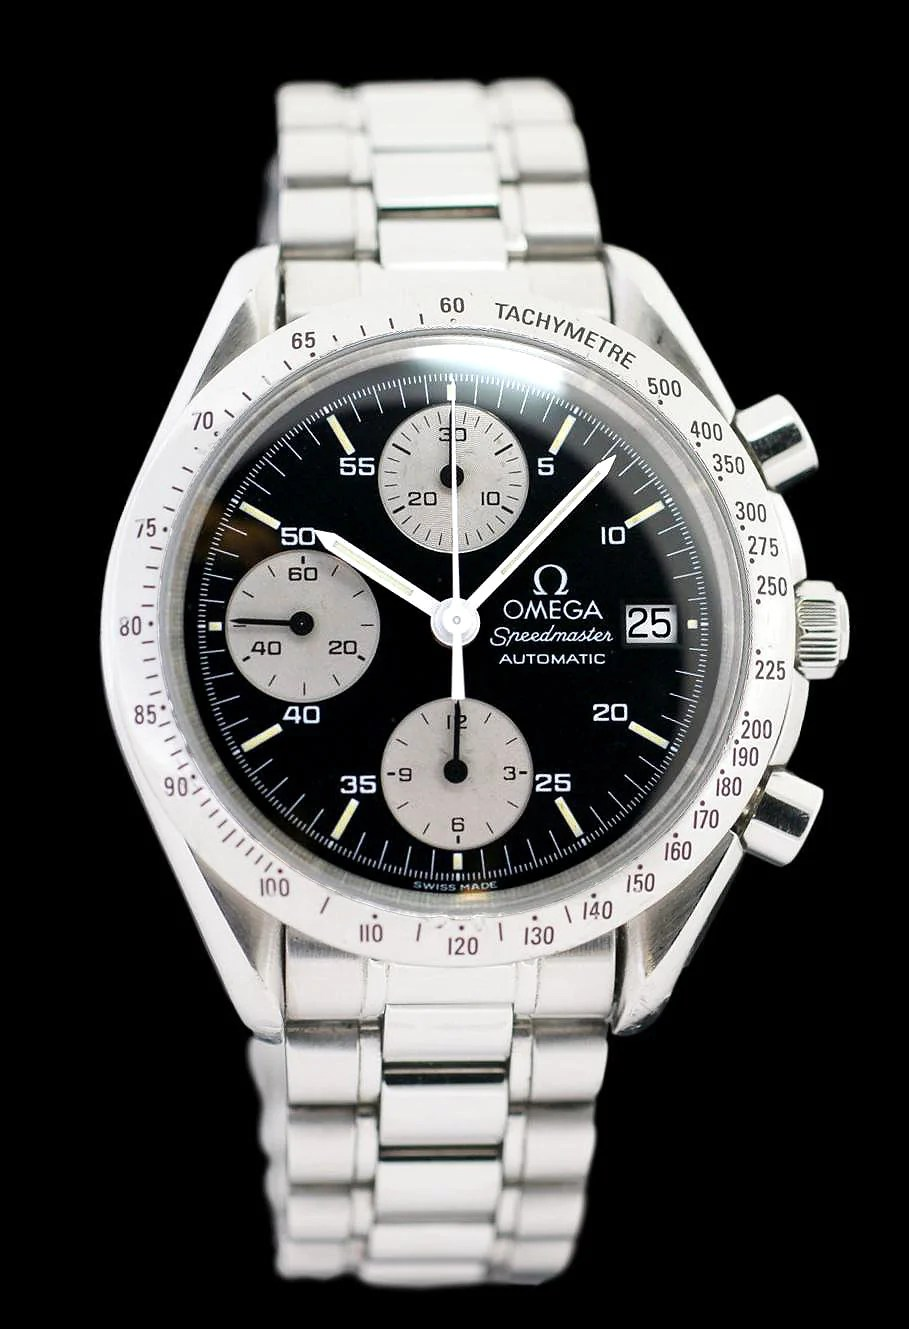 Steel Watch Omega Speedmaster Automatic Date Stainless Steel Watch